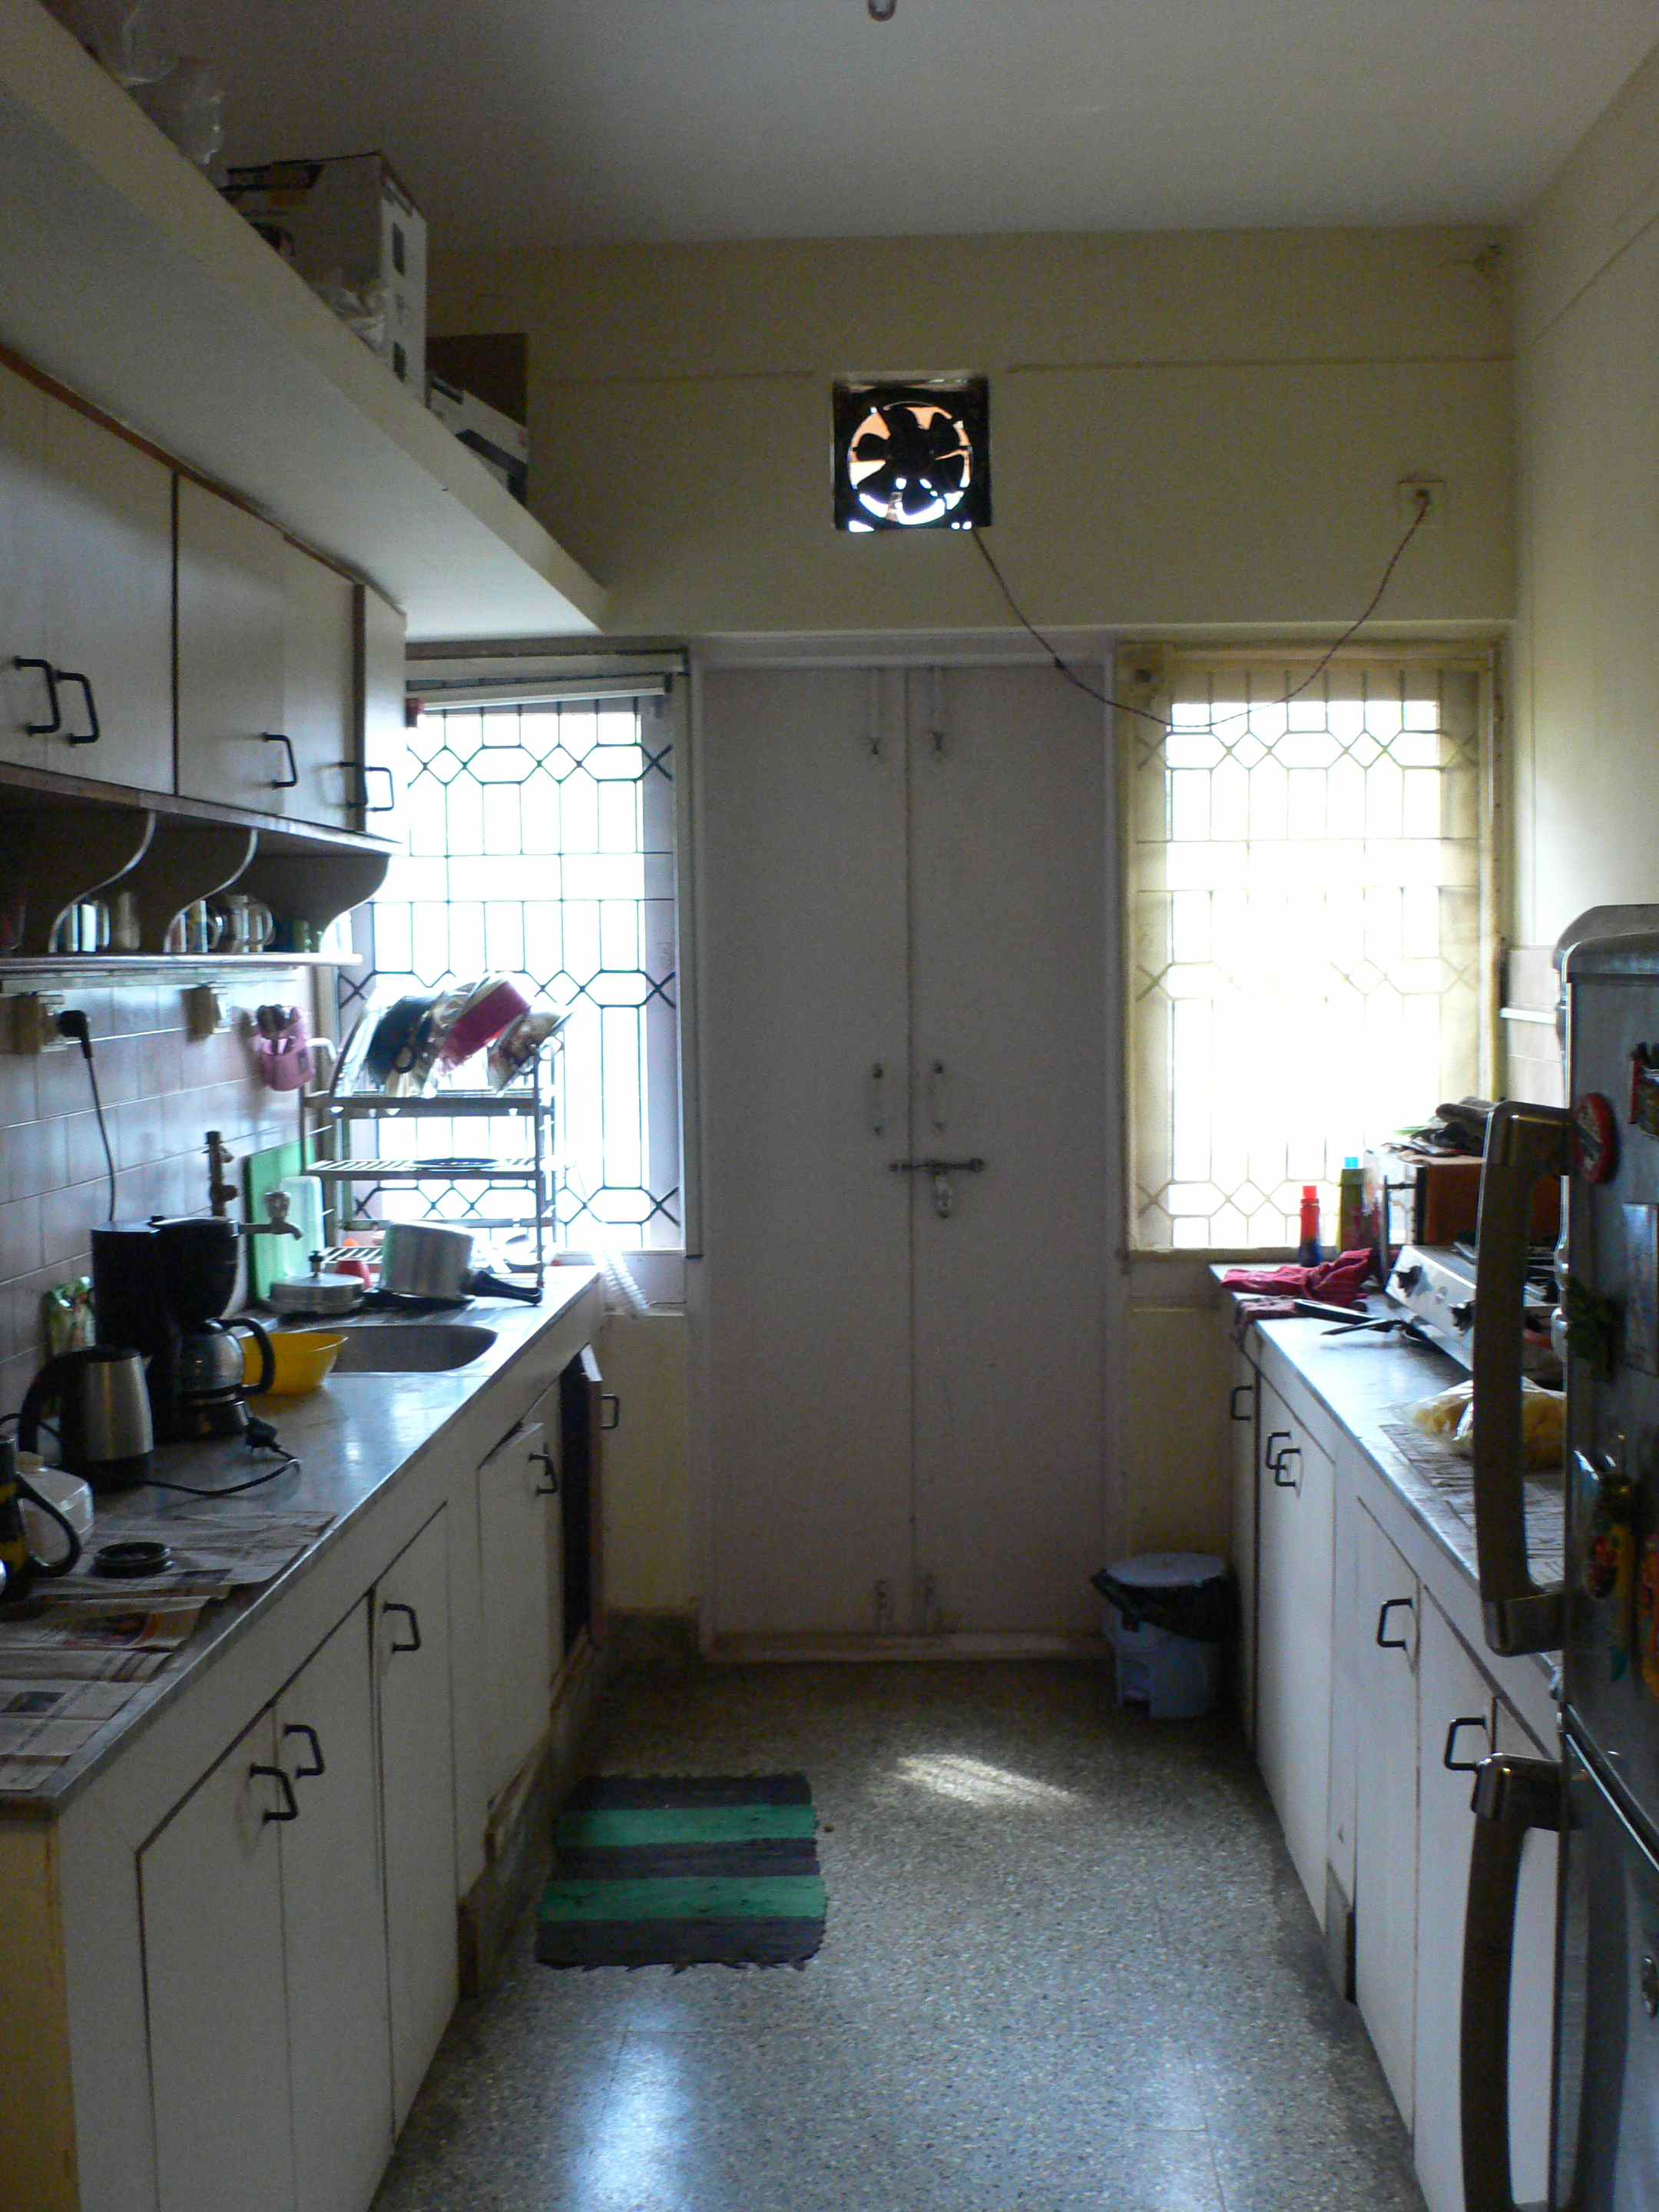 i_005_lowres_the_kitchen.jpg